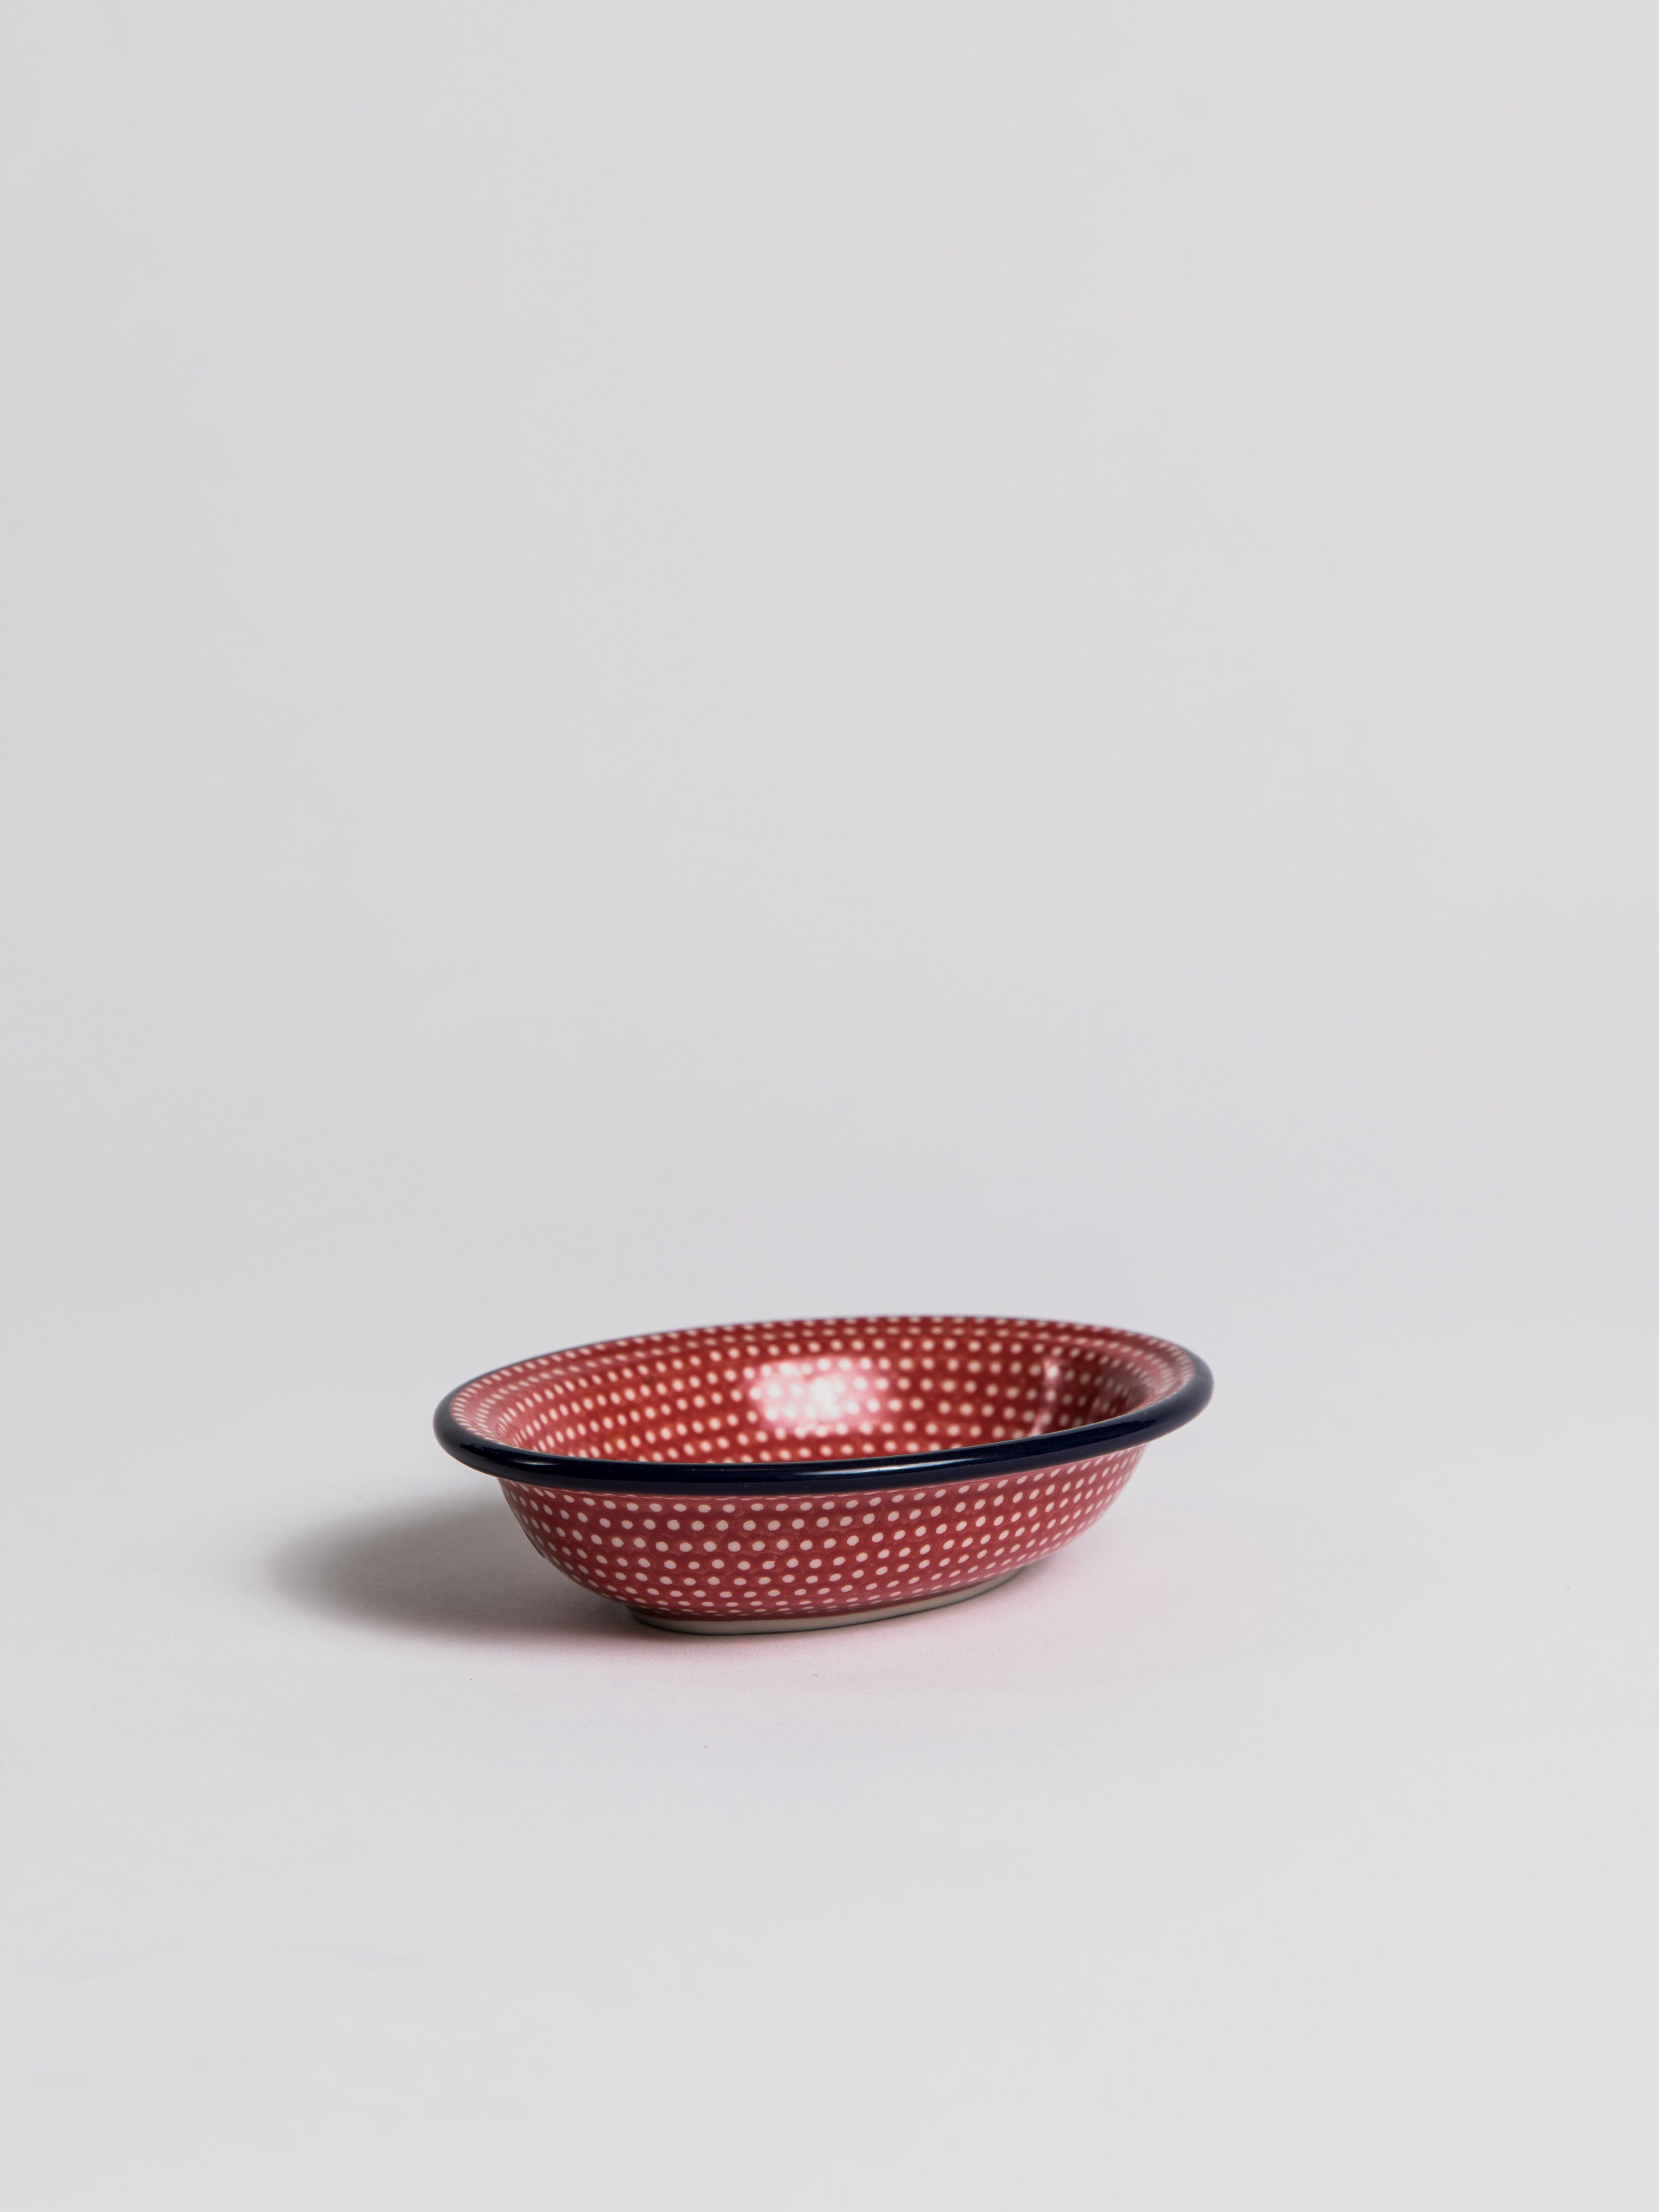 Soap Dish - Oval Red Soap Dish Redecker